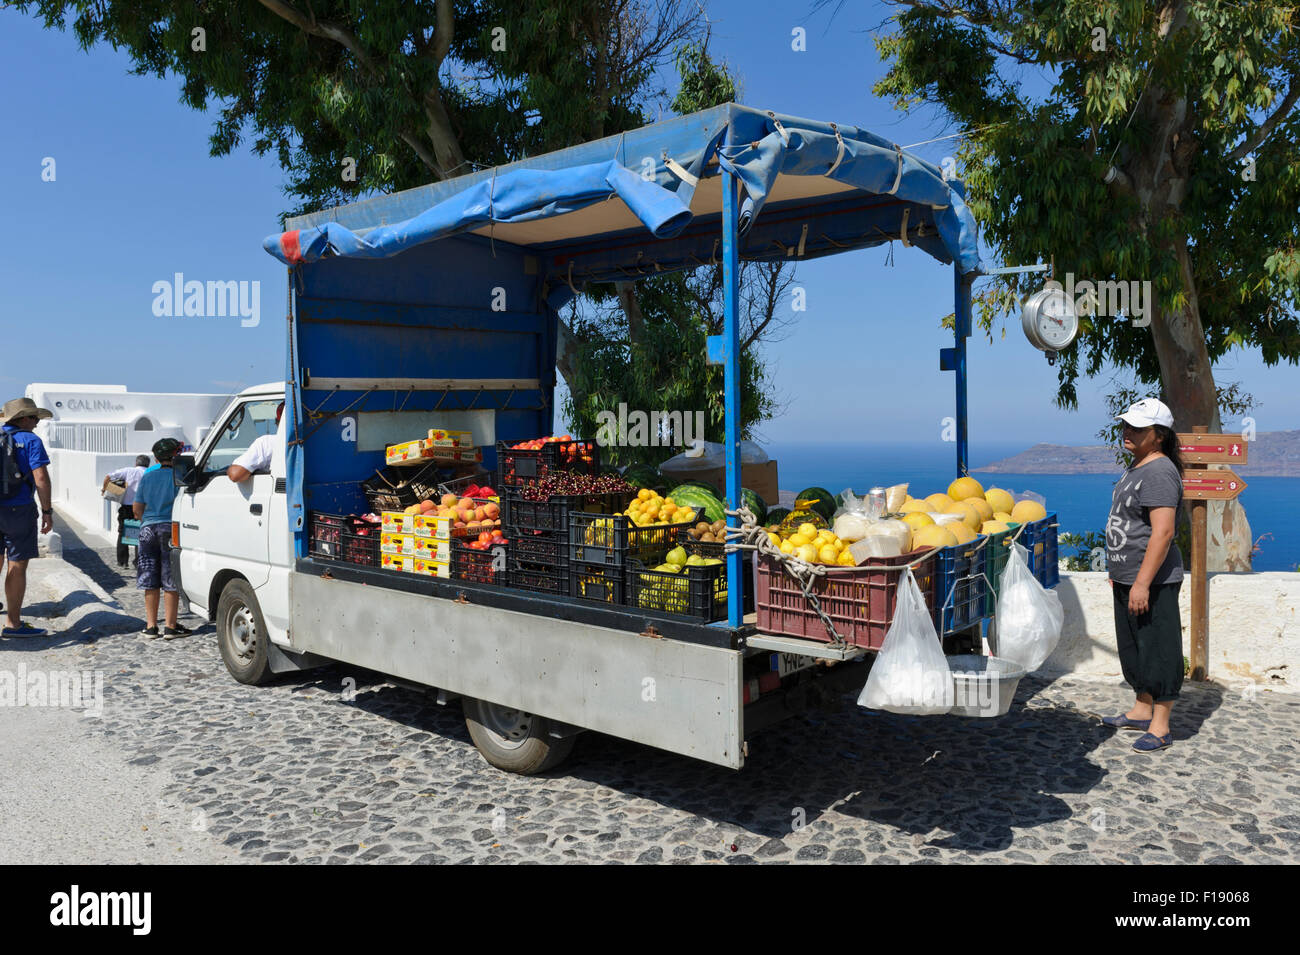 A mobile market at the back of a lorry selling fresh vegetables and fruits, Santorini, Greece. Stock Photo